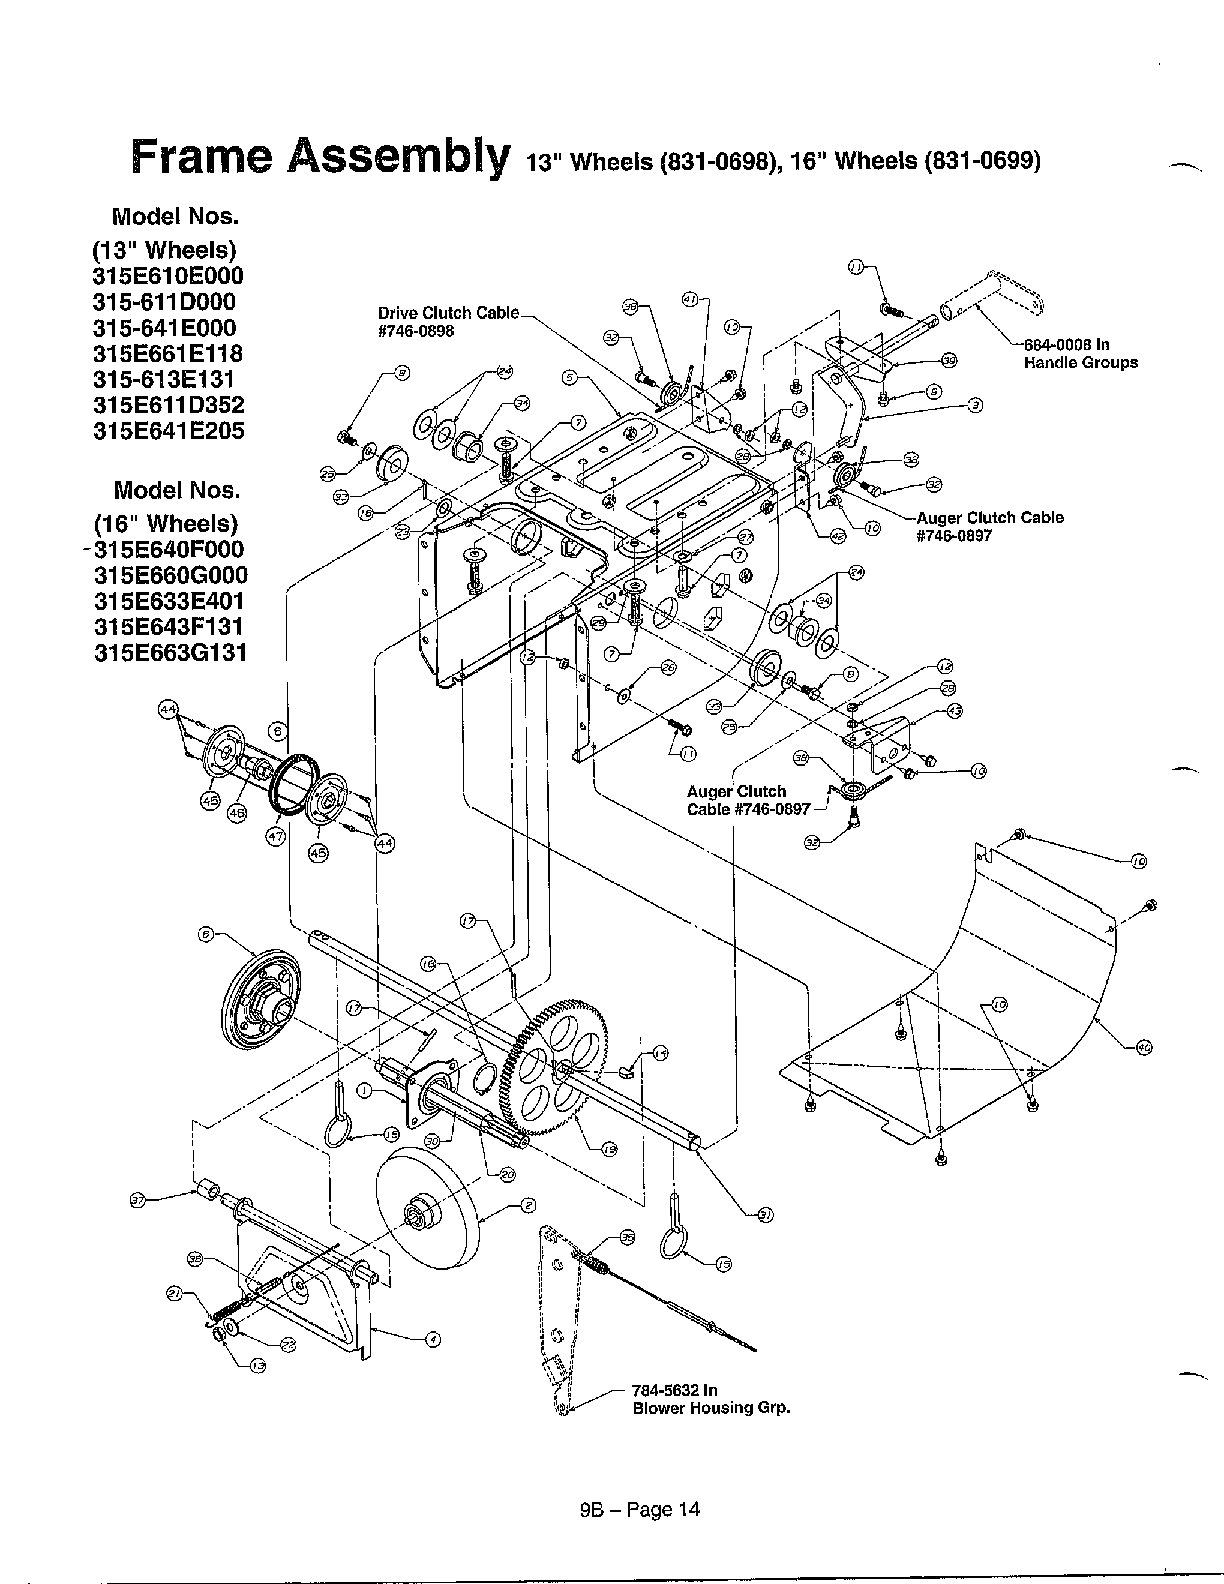 mtd snowblower fuel filter location auto electrical wiring diagram 2014 Ram 2500 Diesel related with mtd snowblower fuel filter location